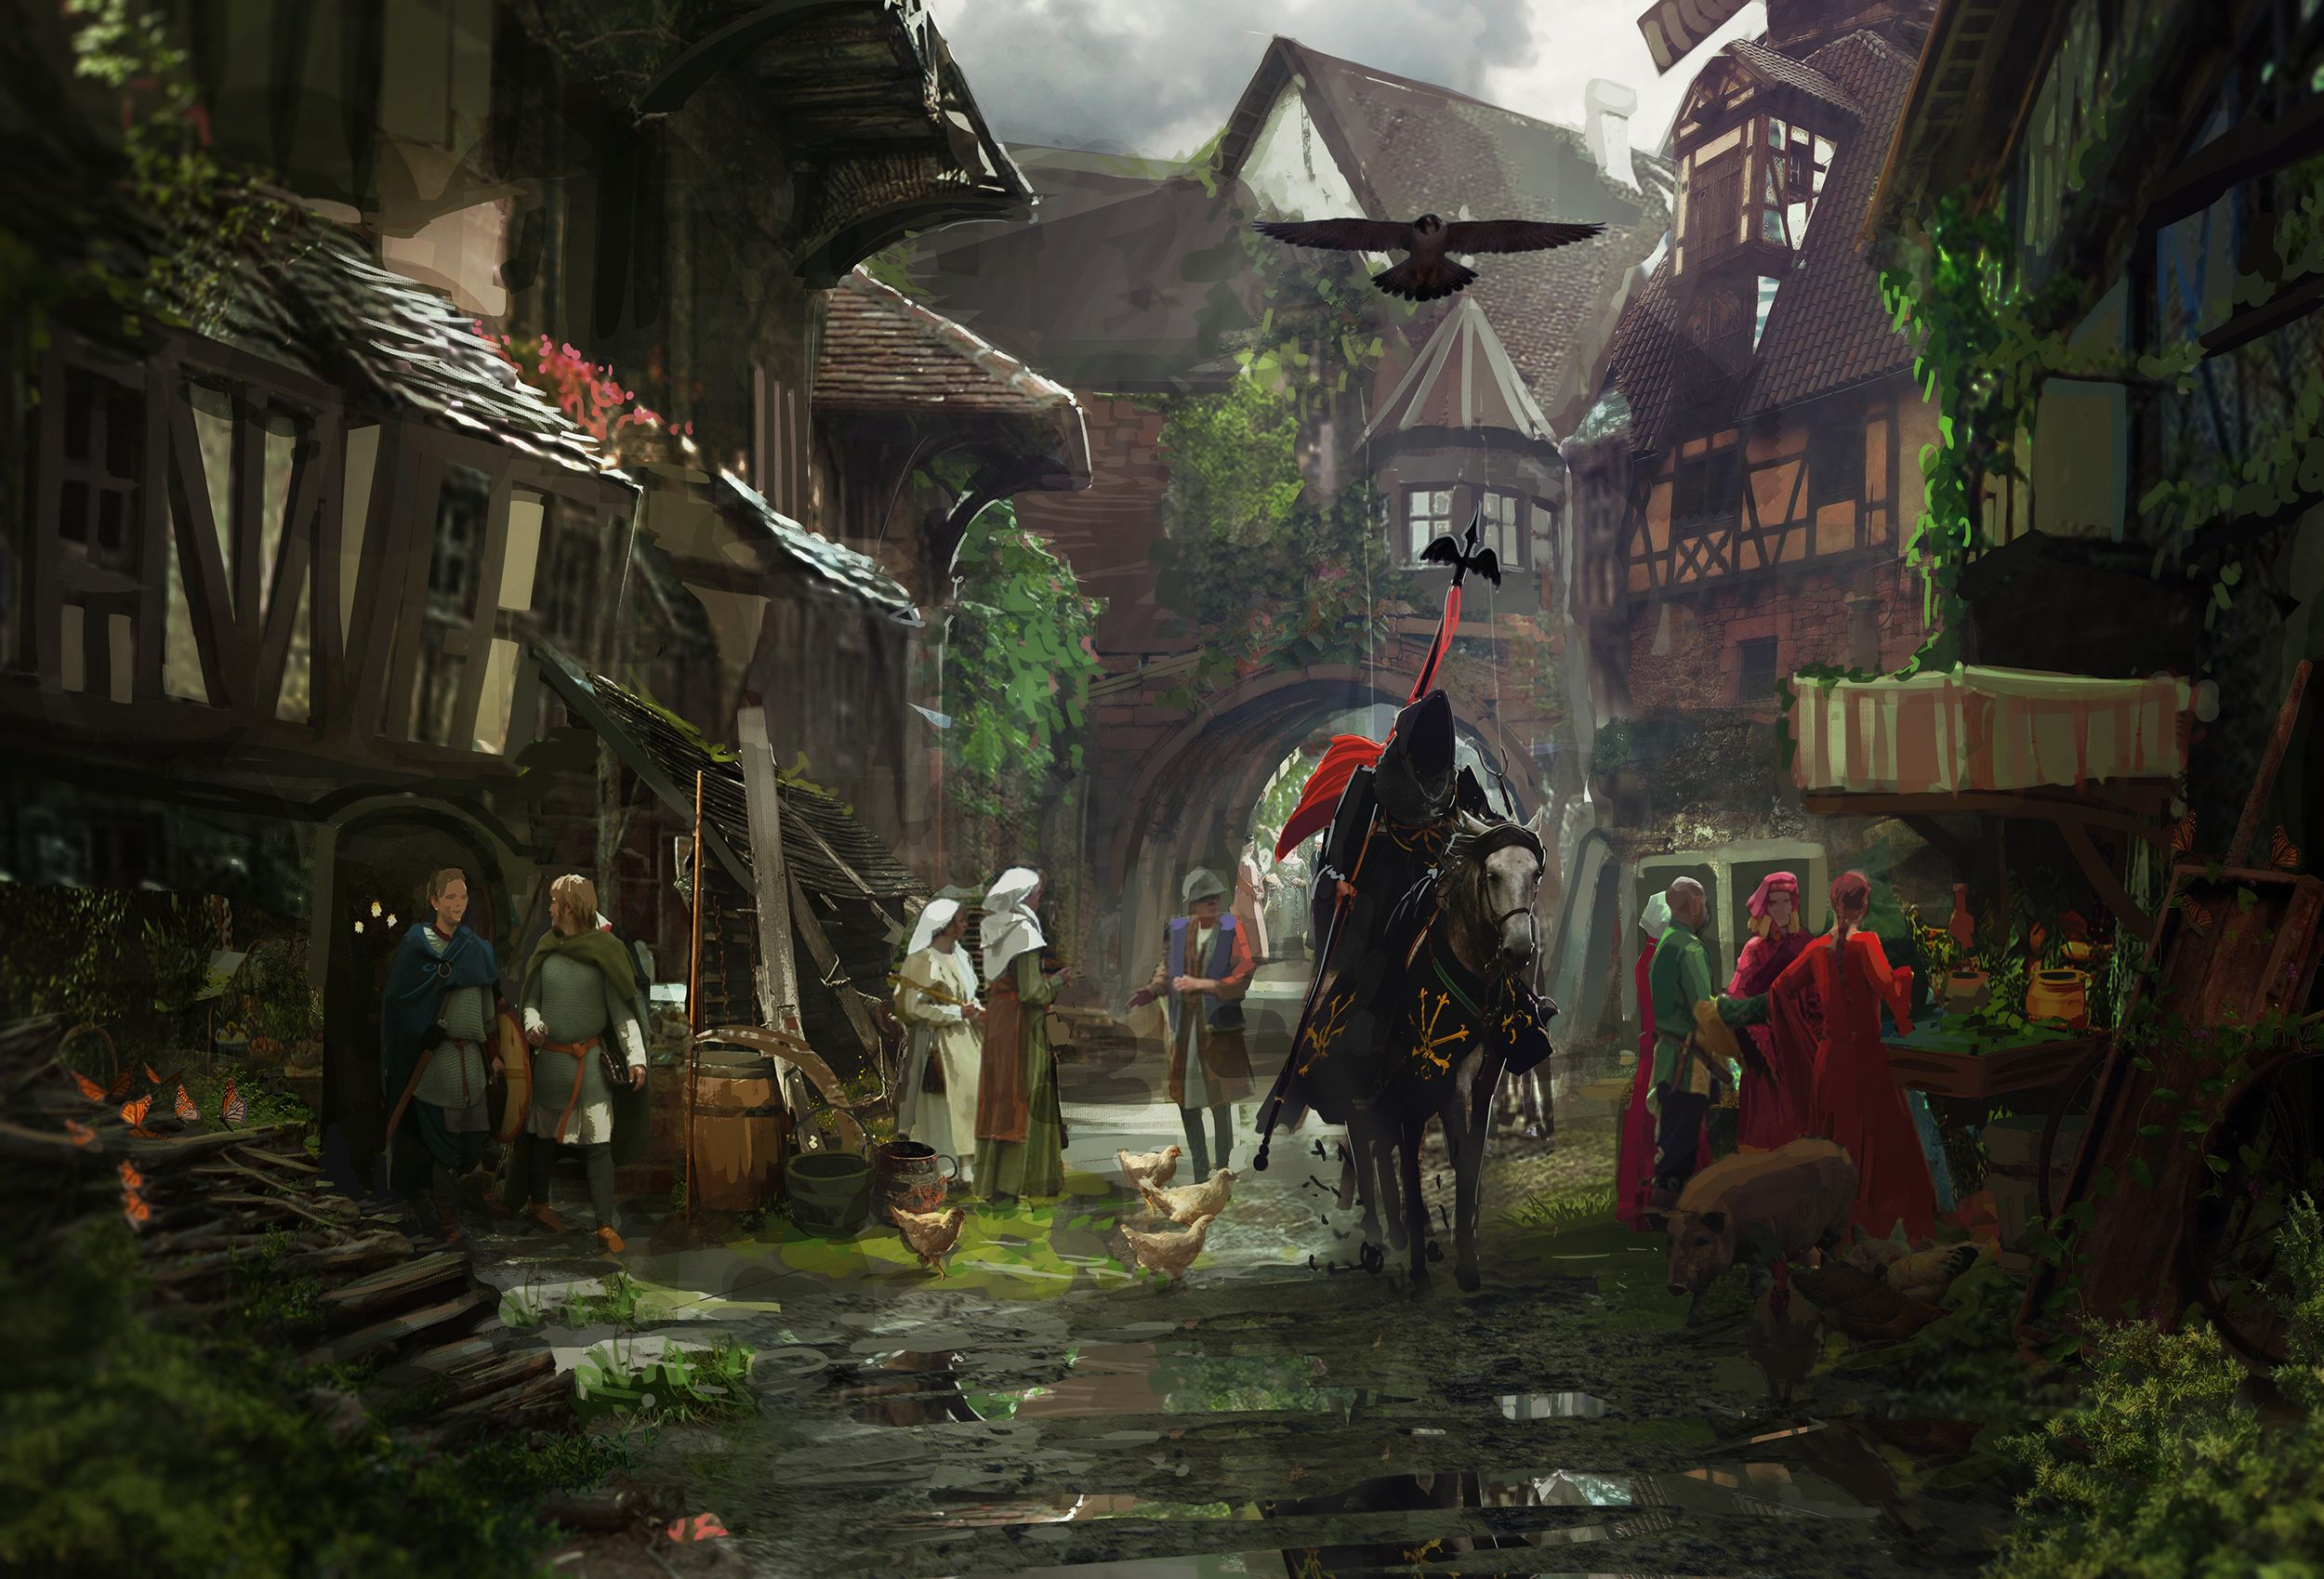 Knight Medieval town, Middle Ages Fantasy 2500x1699